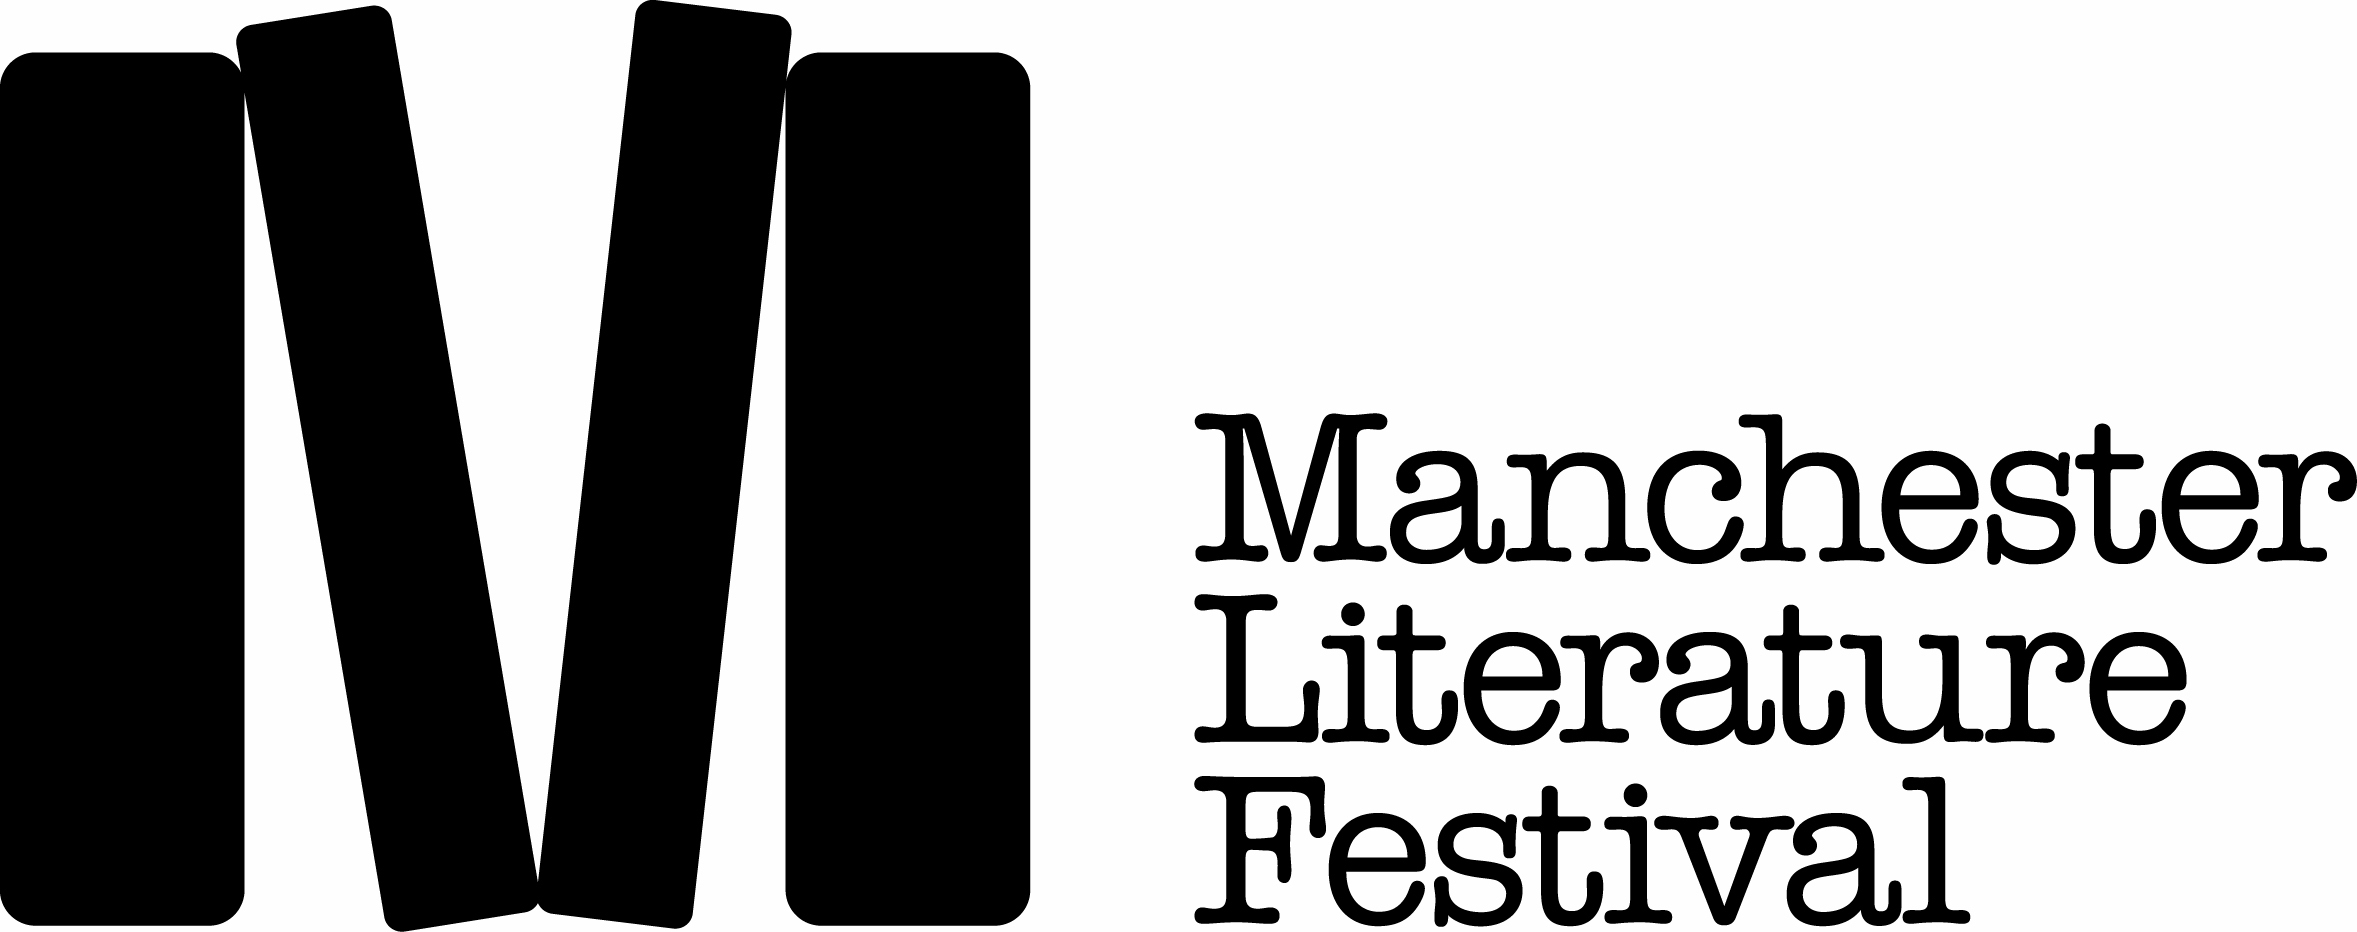 manchester event 11th october 2014 the written word the manchester literature festival